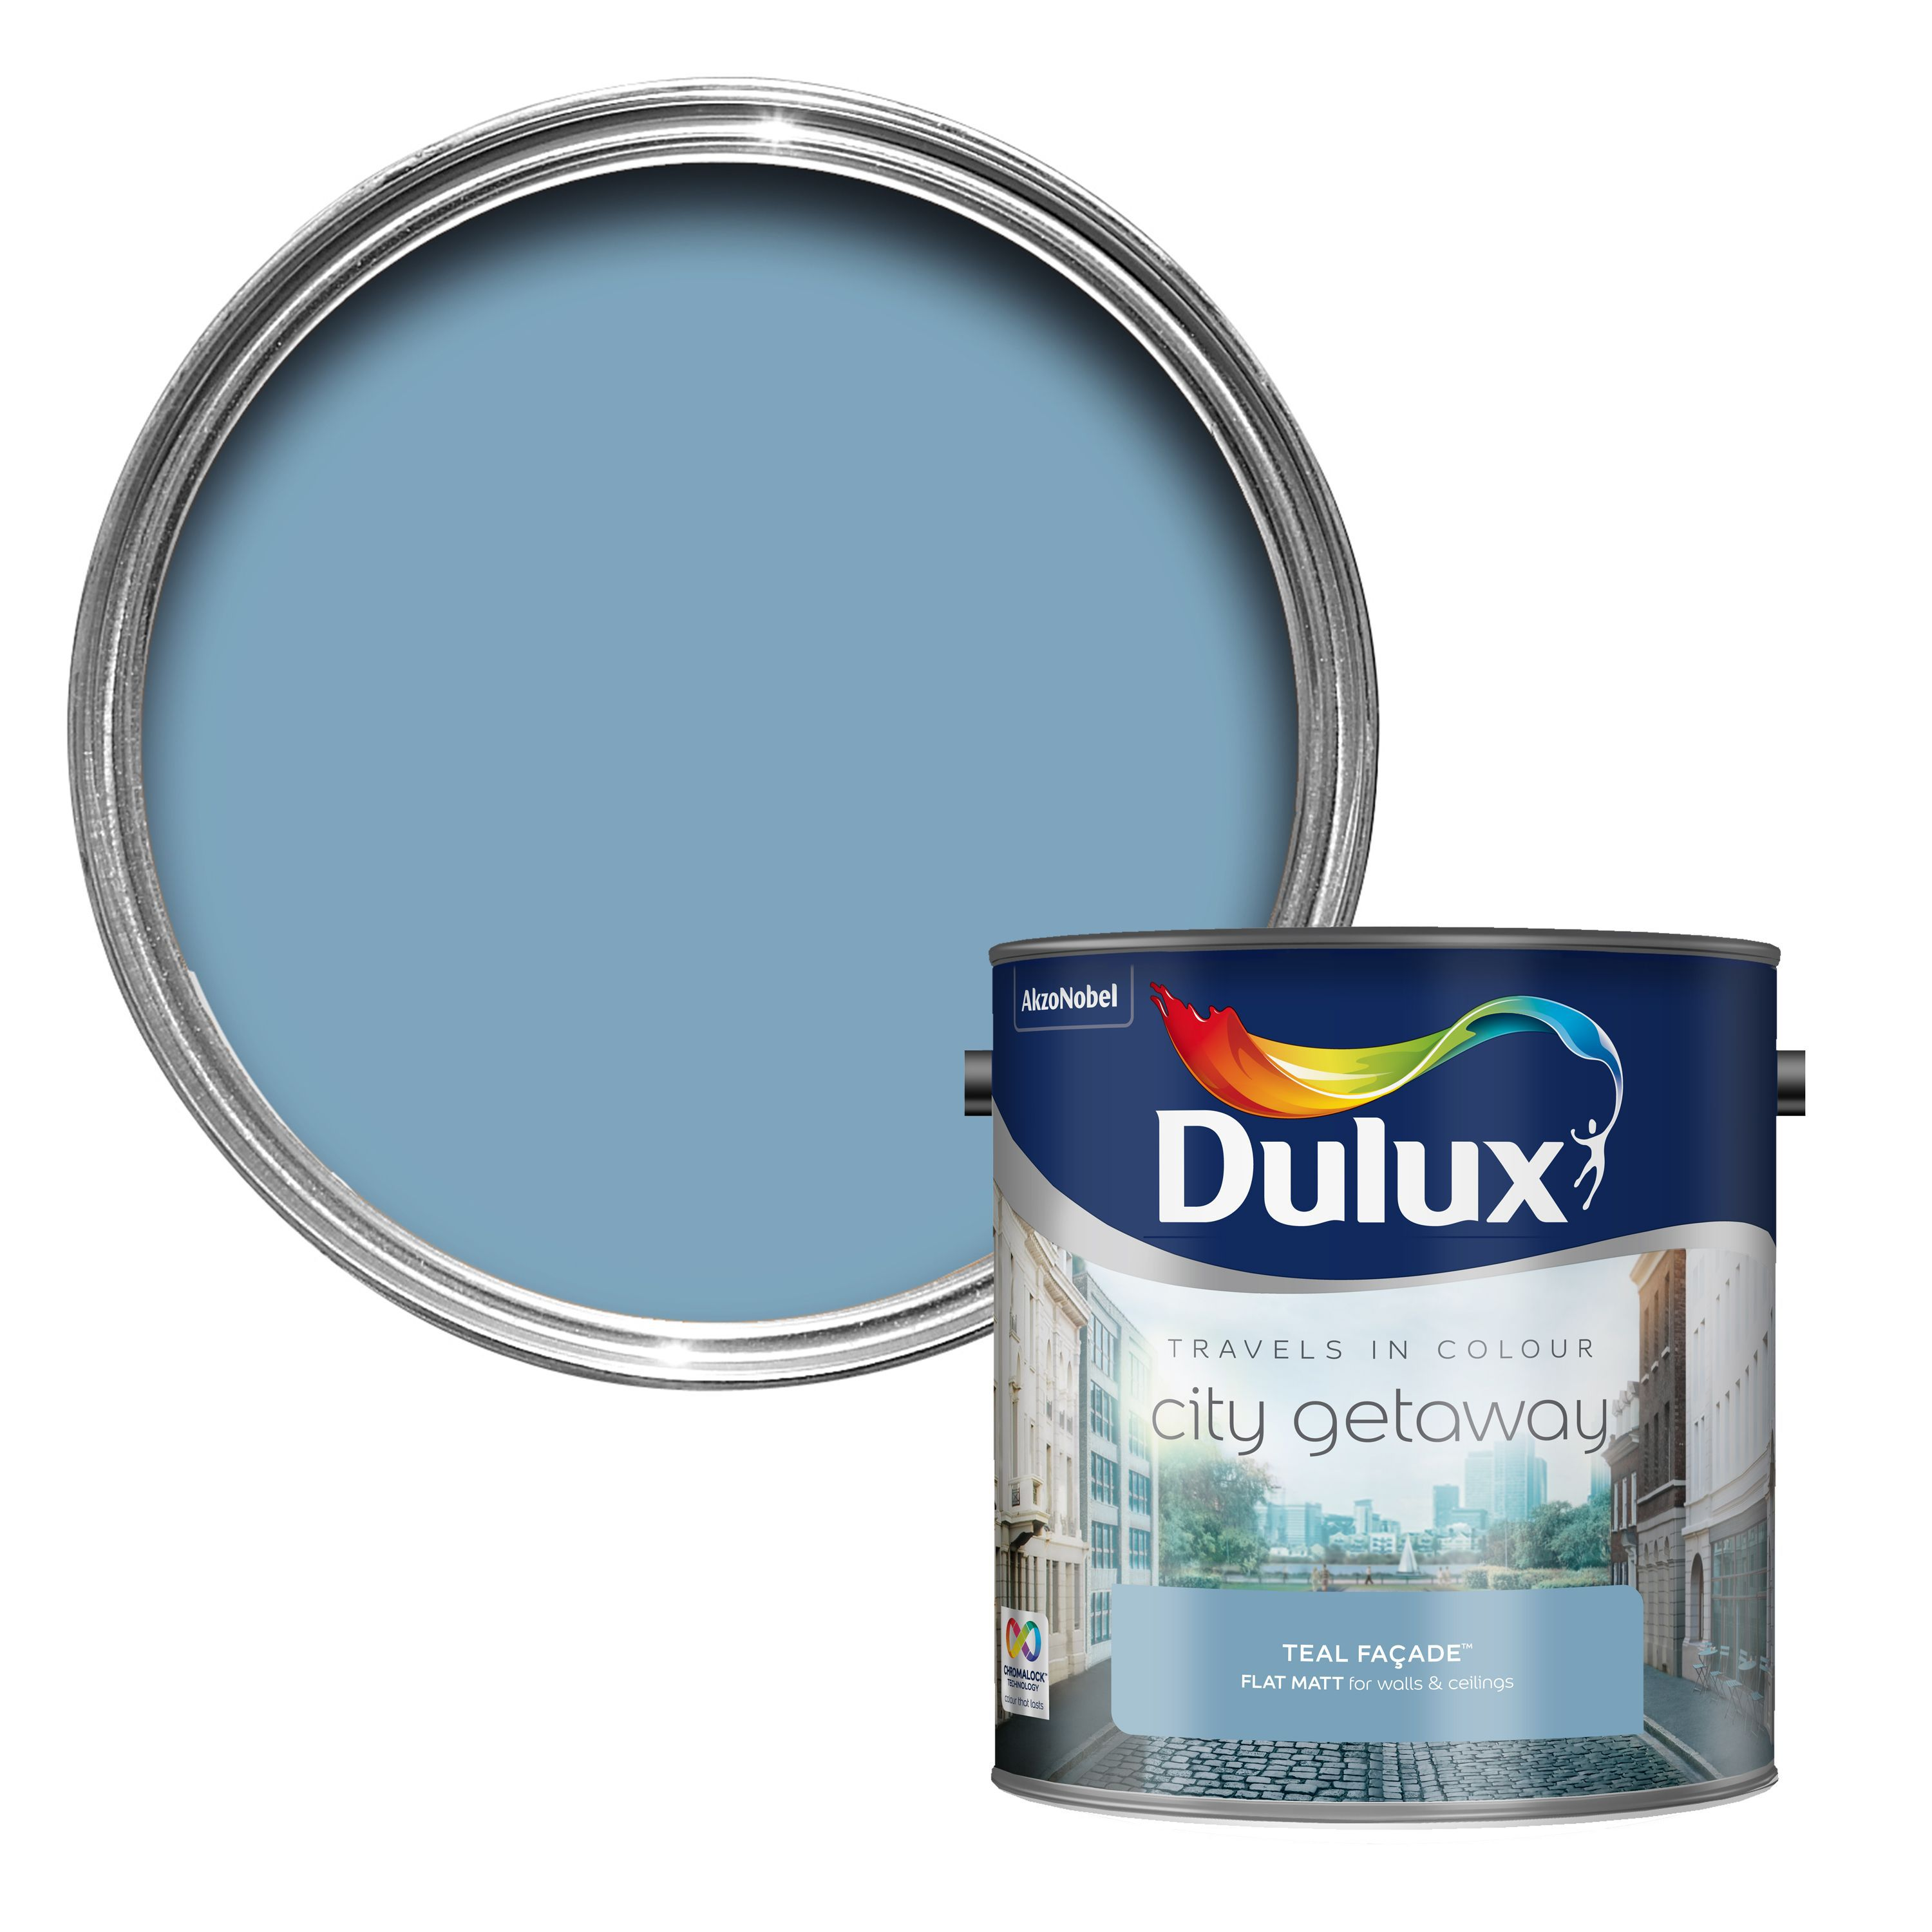 Dulux Travels In Colour Teal Fa Ade Blue Matt Emulsion